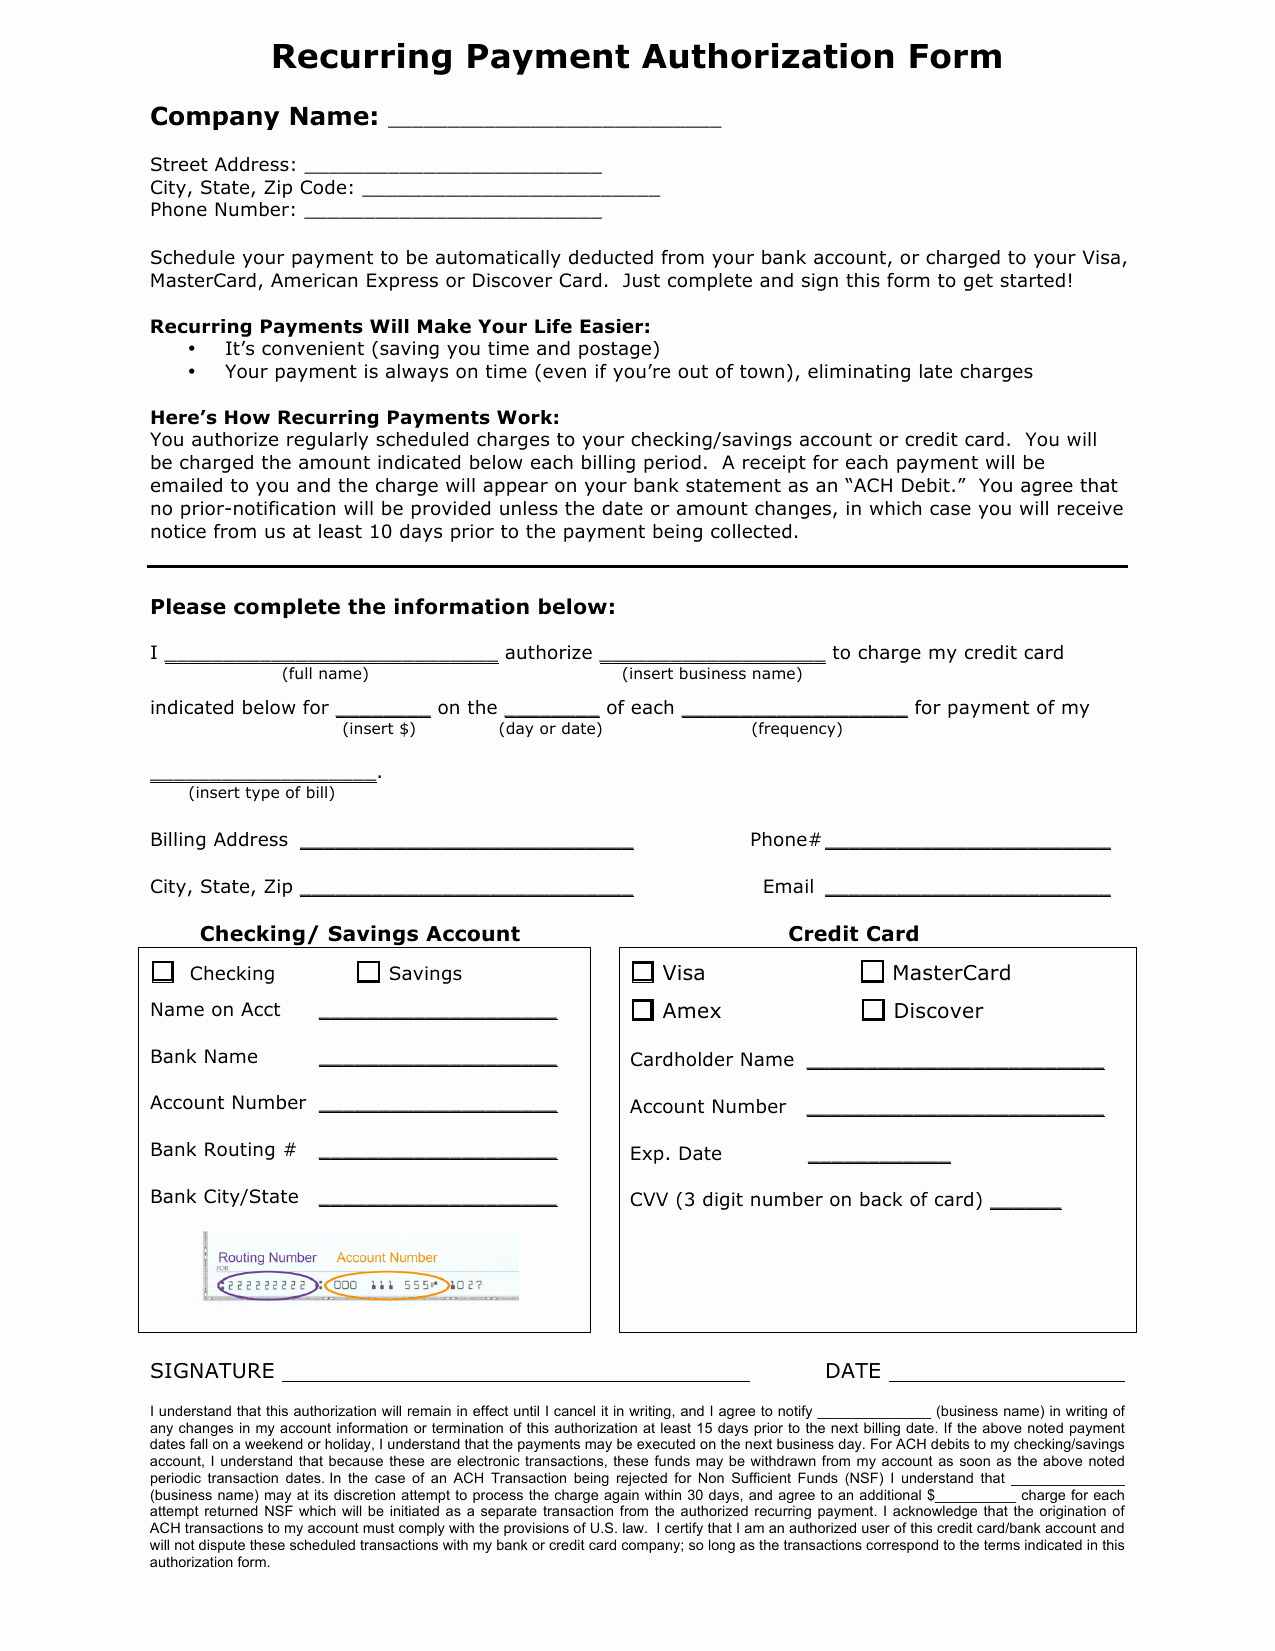 Credit Card Payment form Template Best Of Download Recurring Payment Authorization form Template